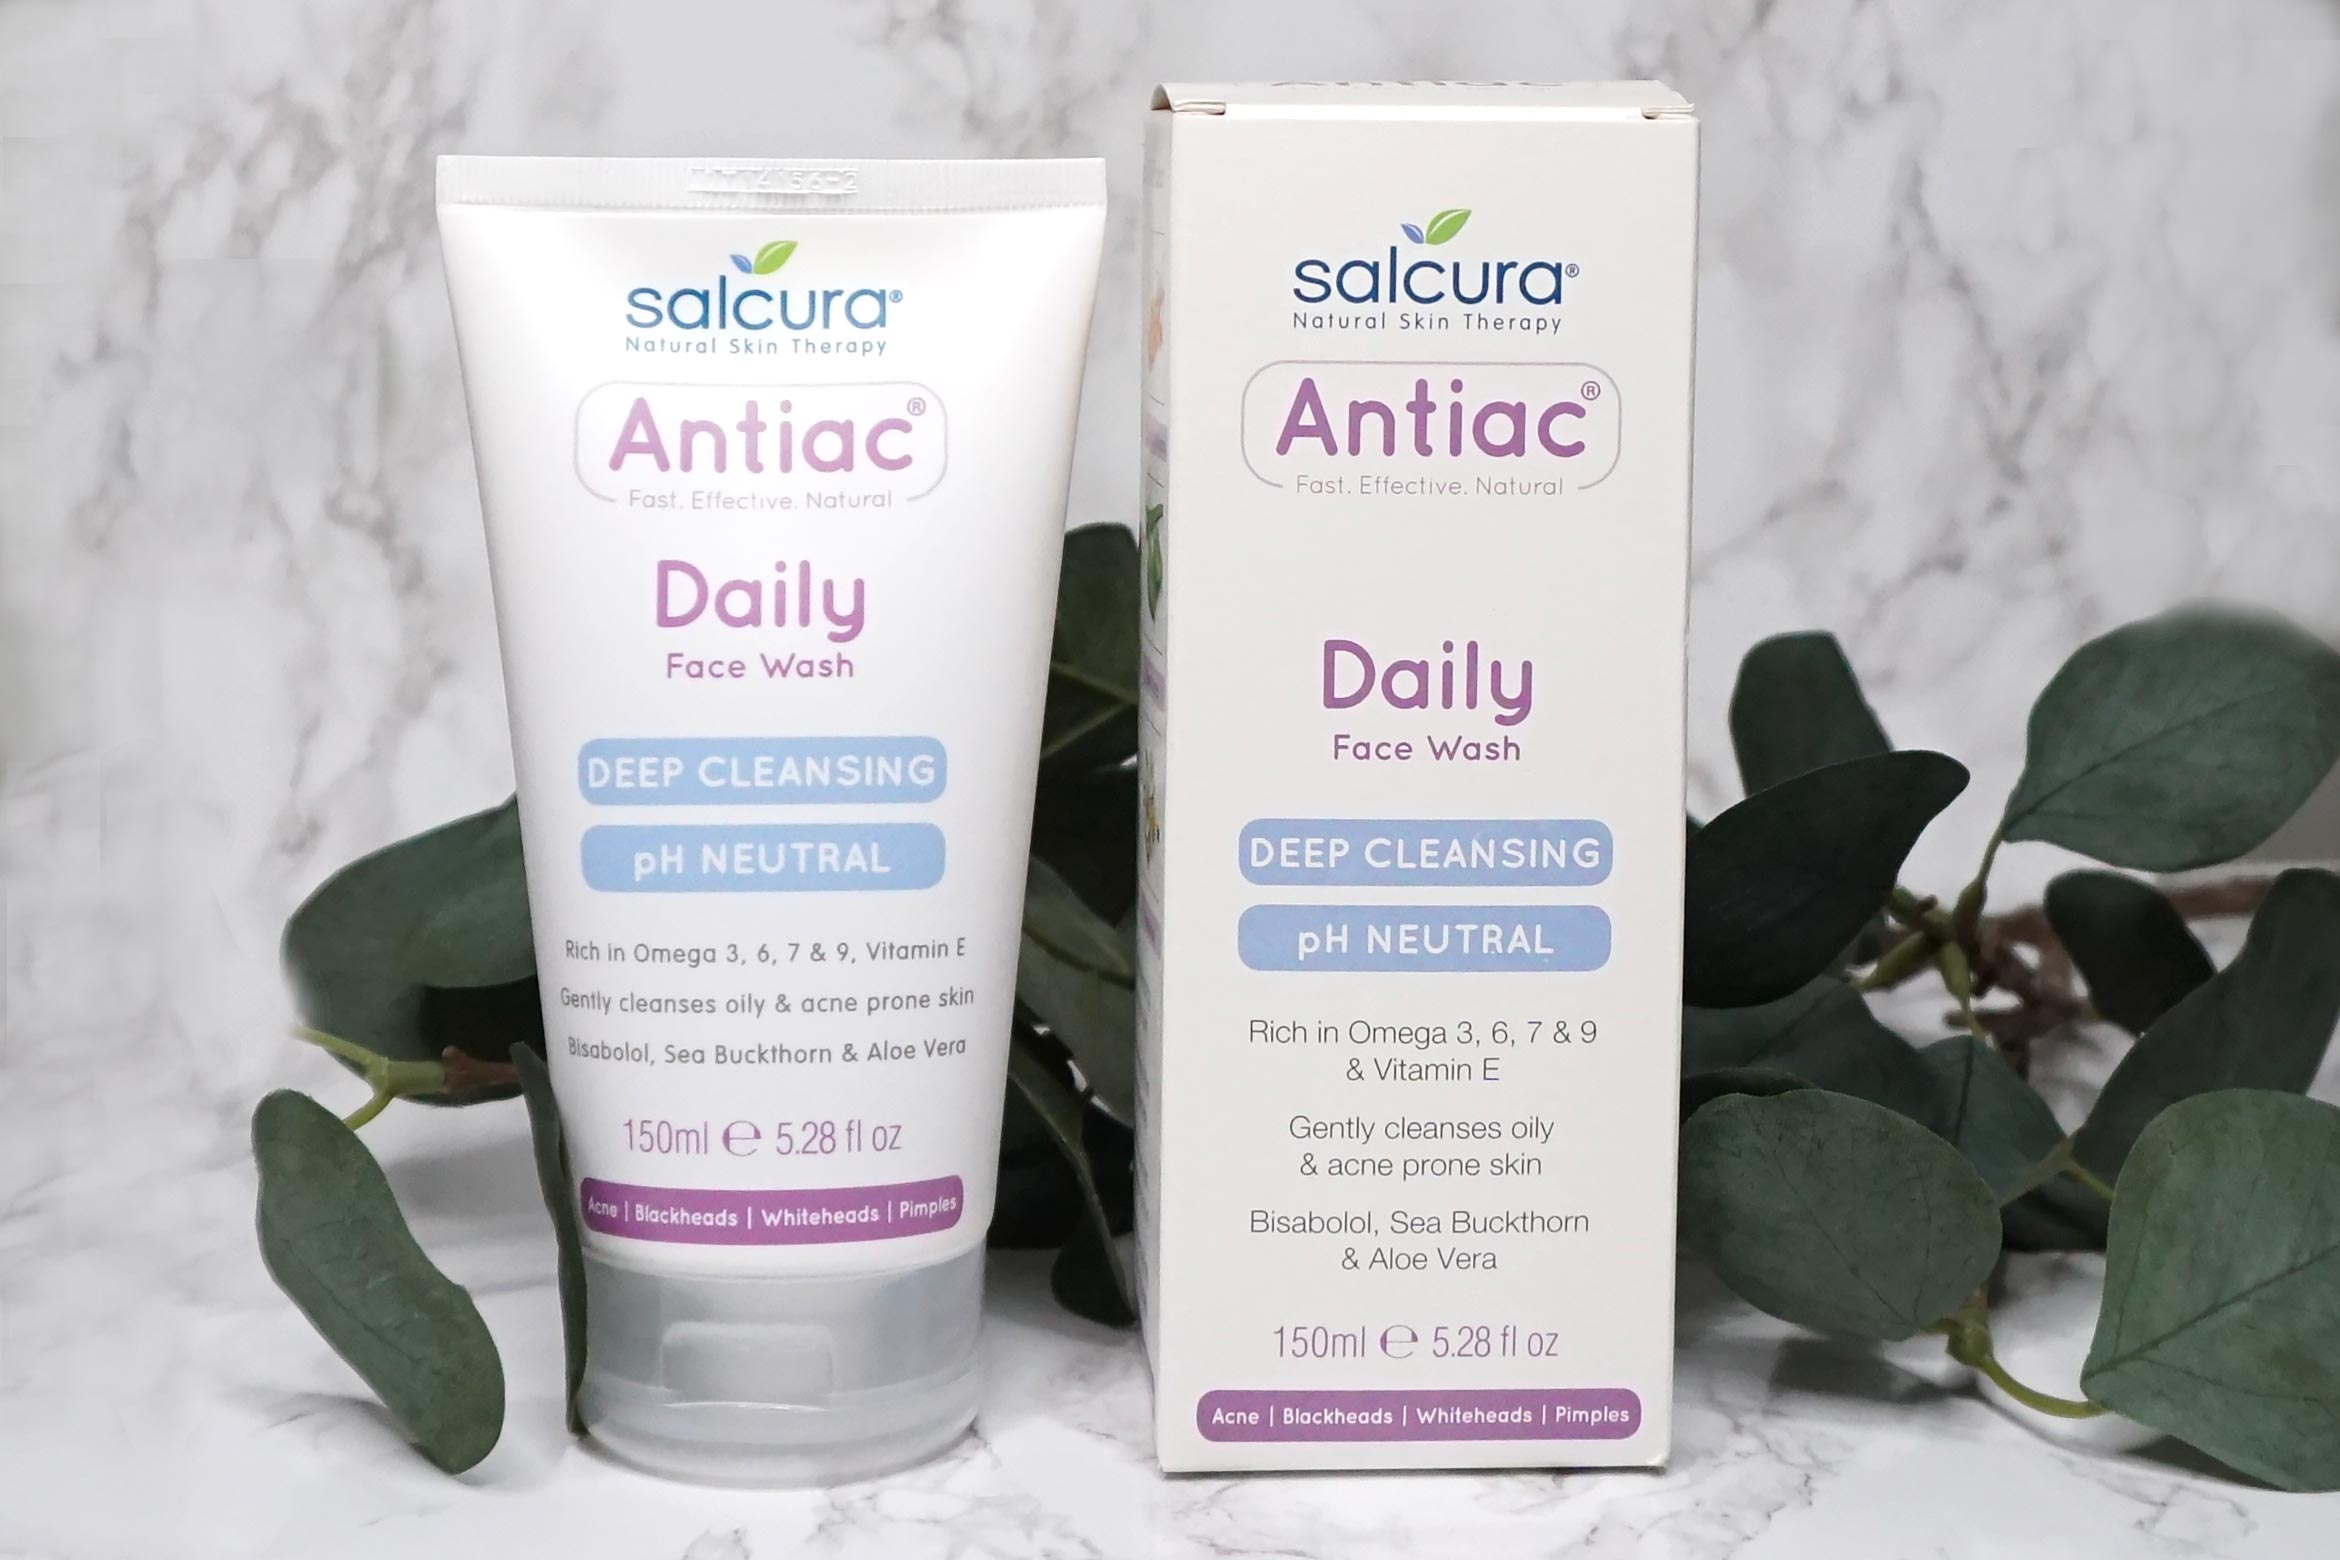 salcura-antiac-daily-face-wash-review